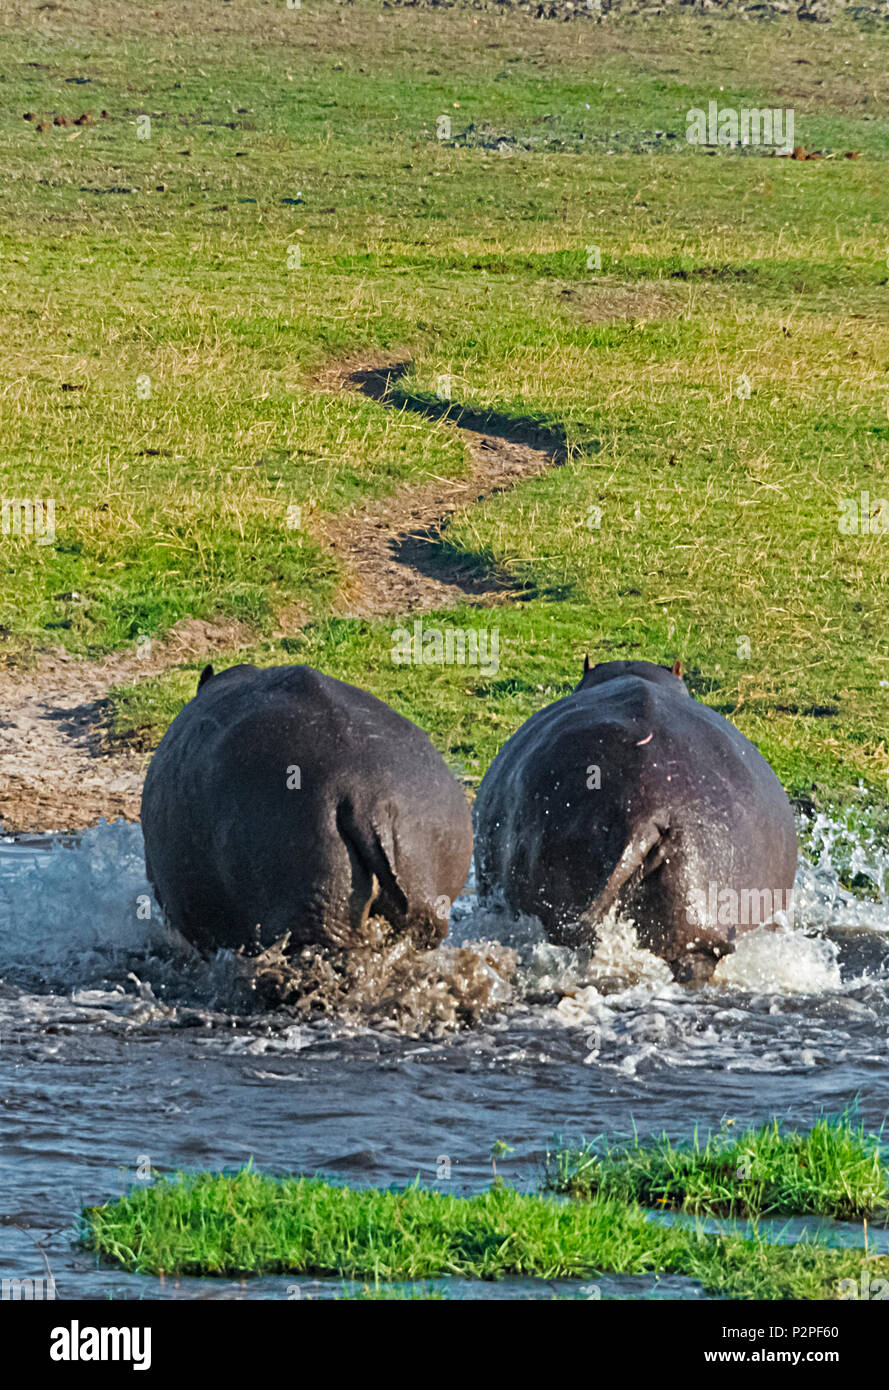 Hippo, Chobe National Park, North-West District, Botswana - Stock Image